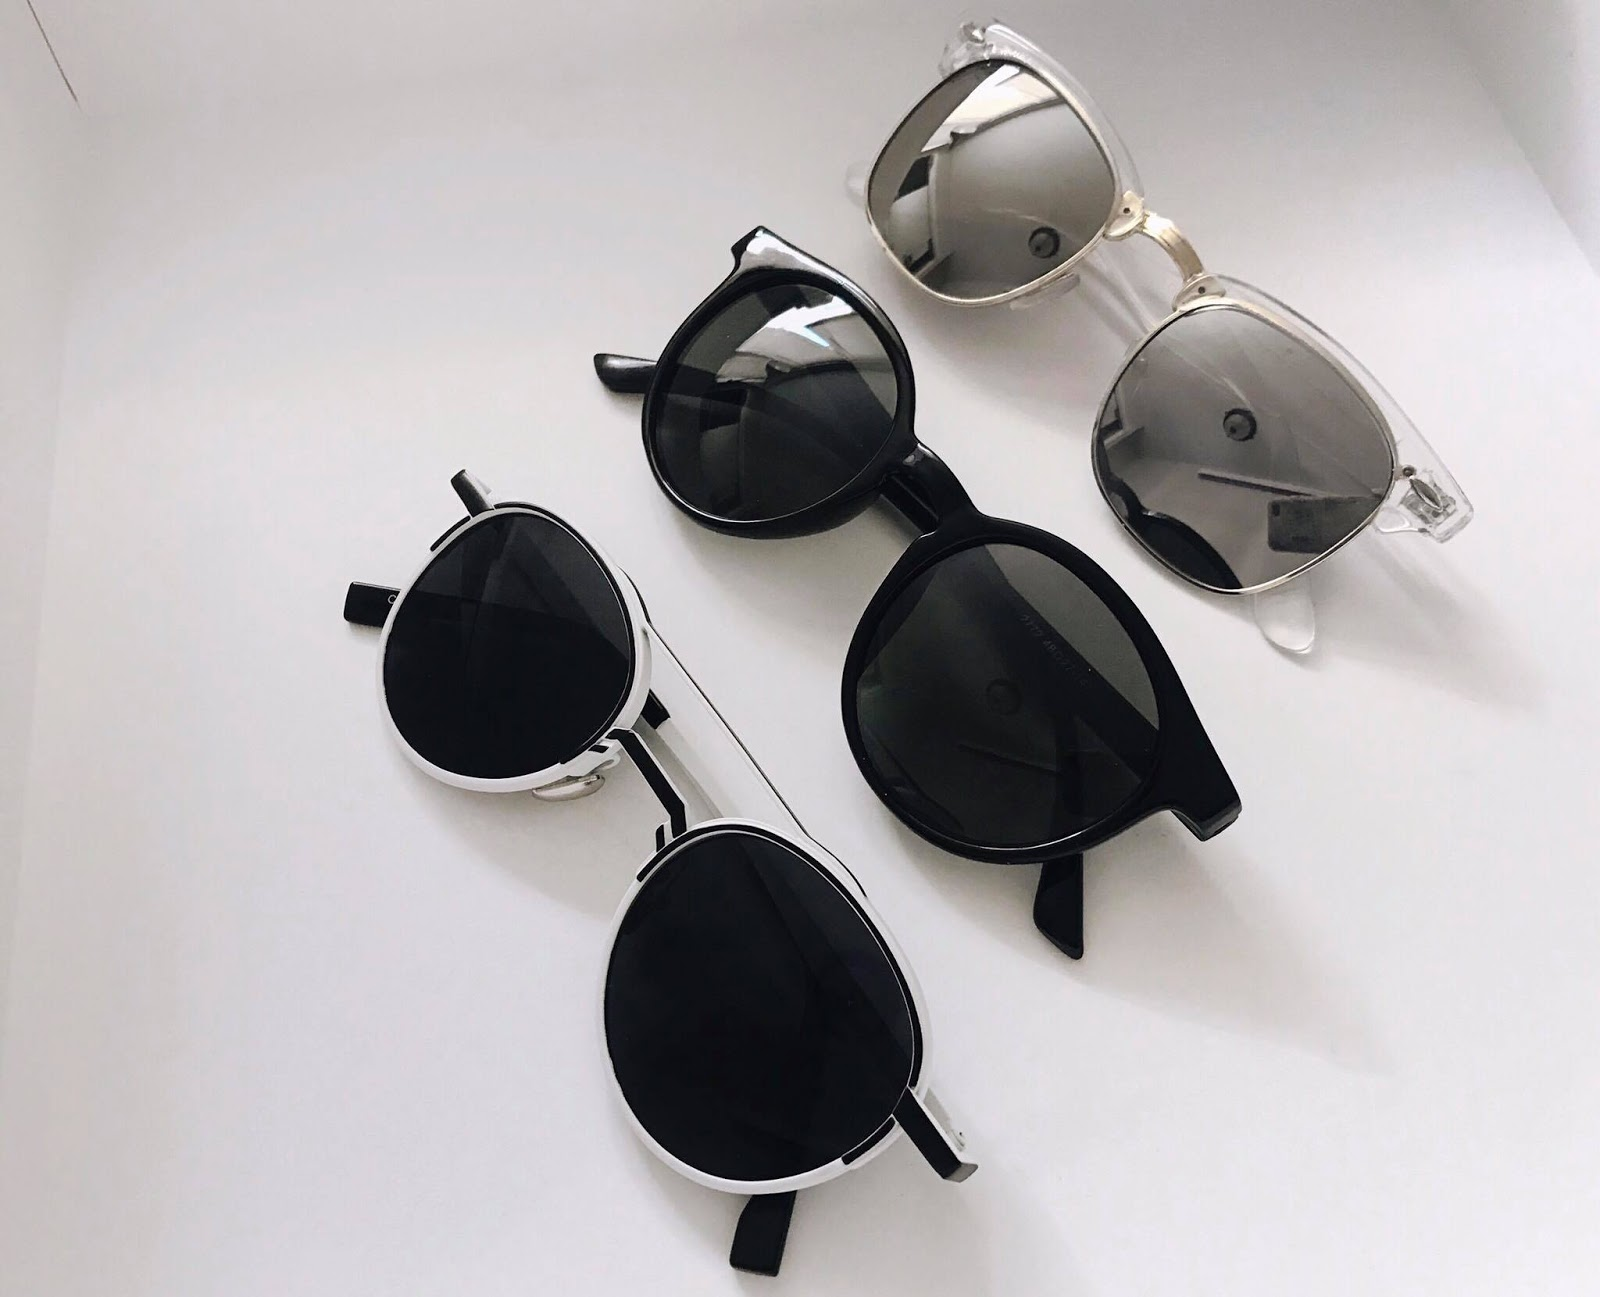 e94eb9f54e These were the three pairs of sunglasses I received